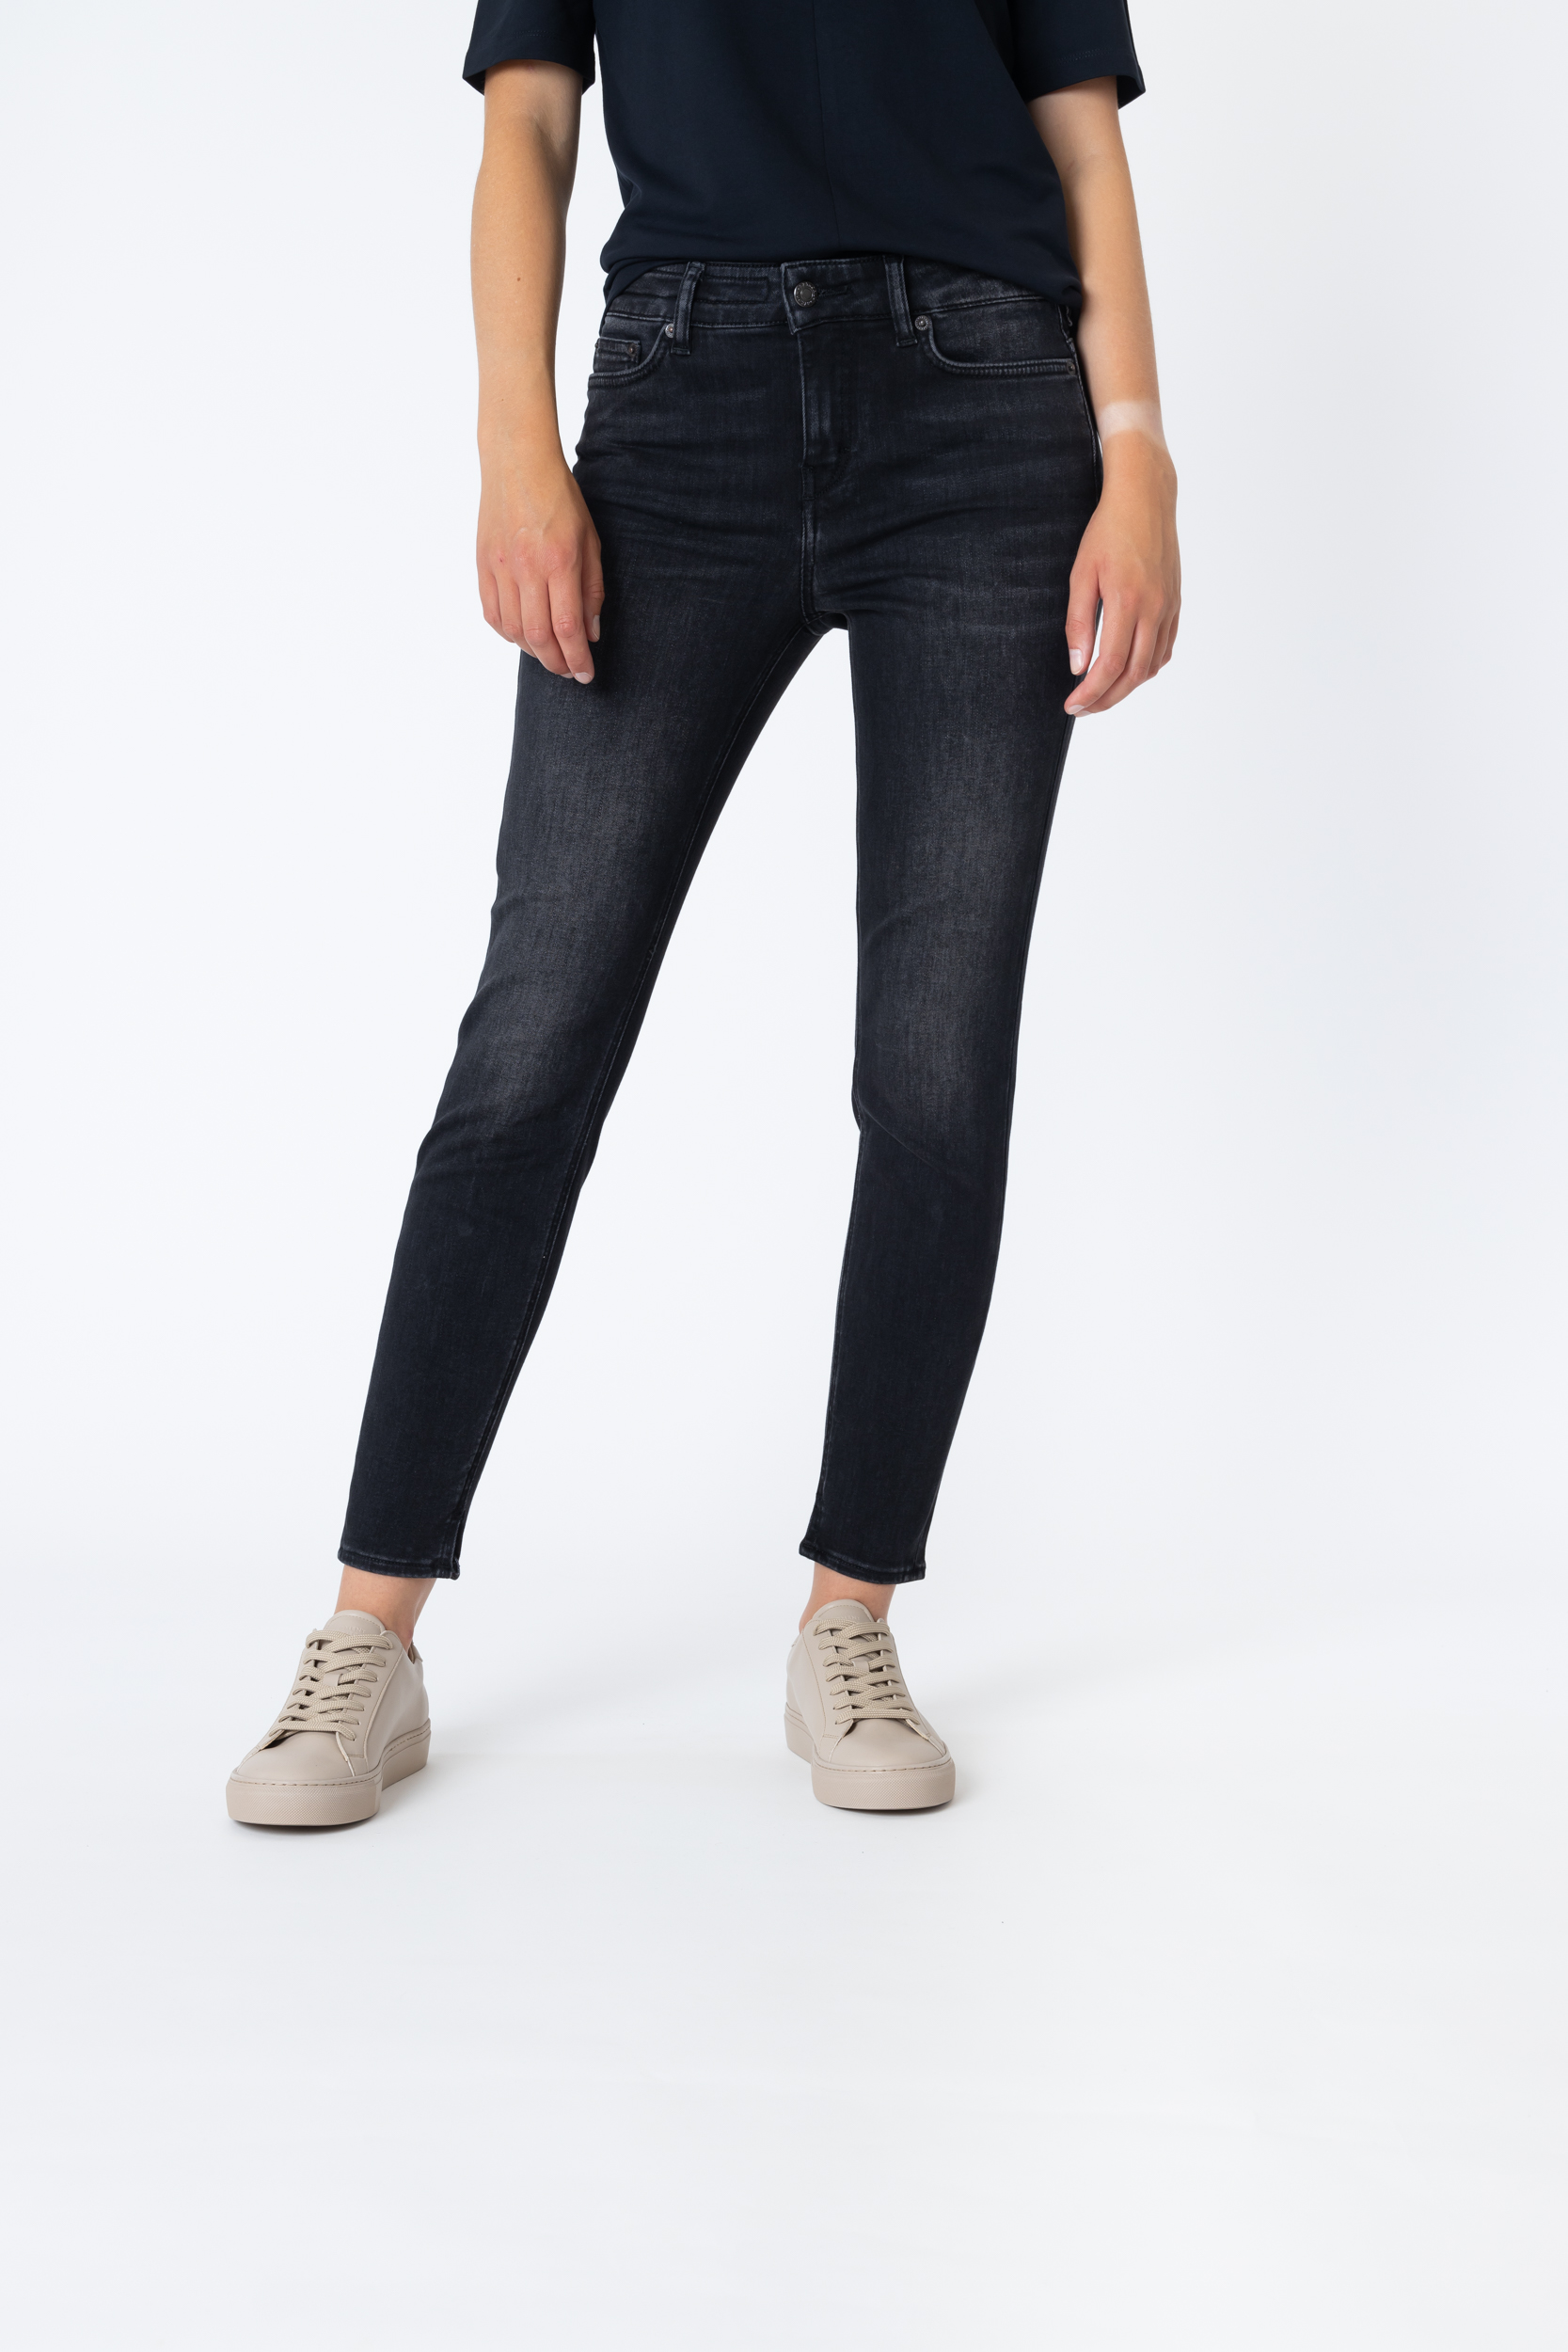 Jeans Need